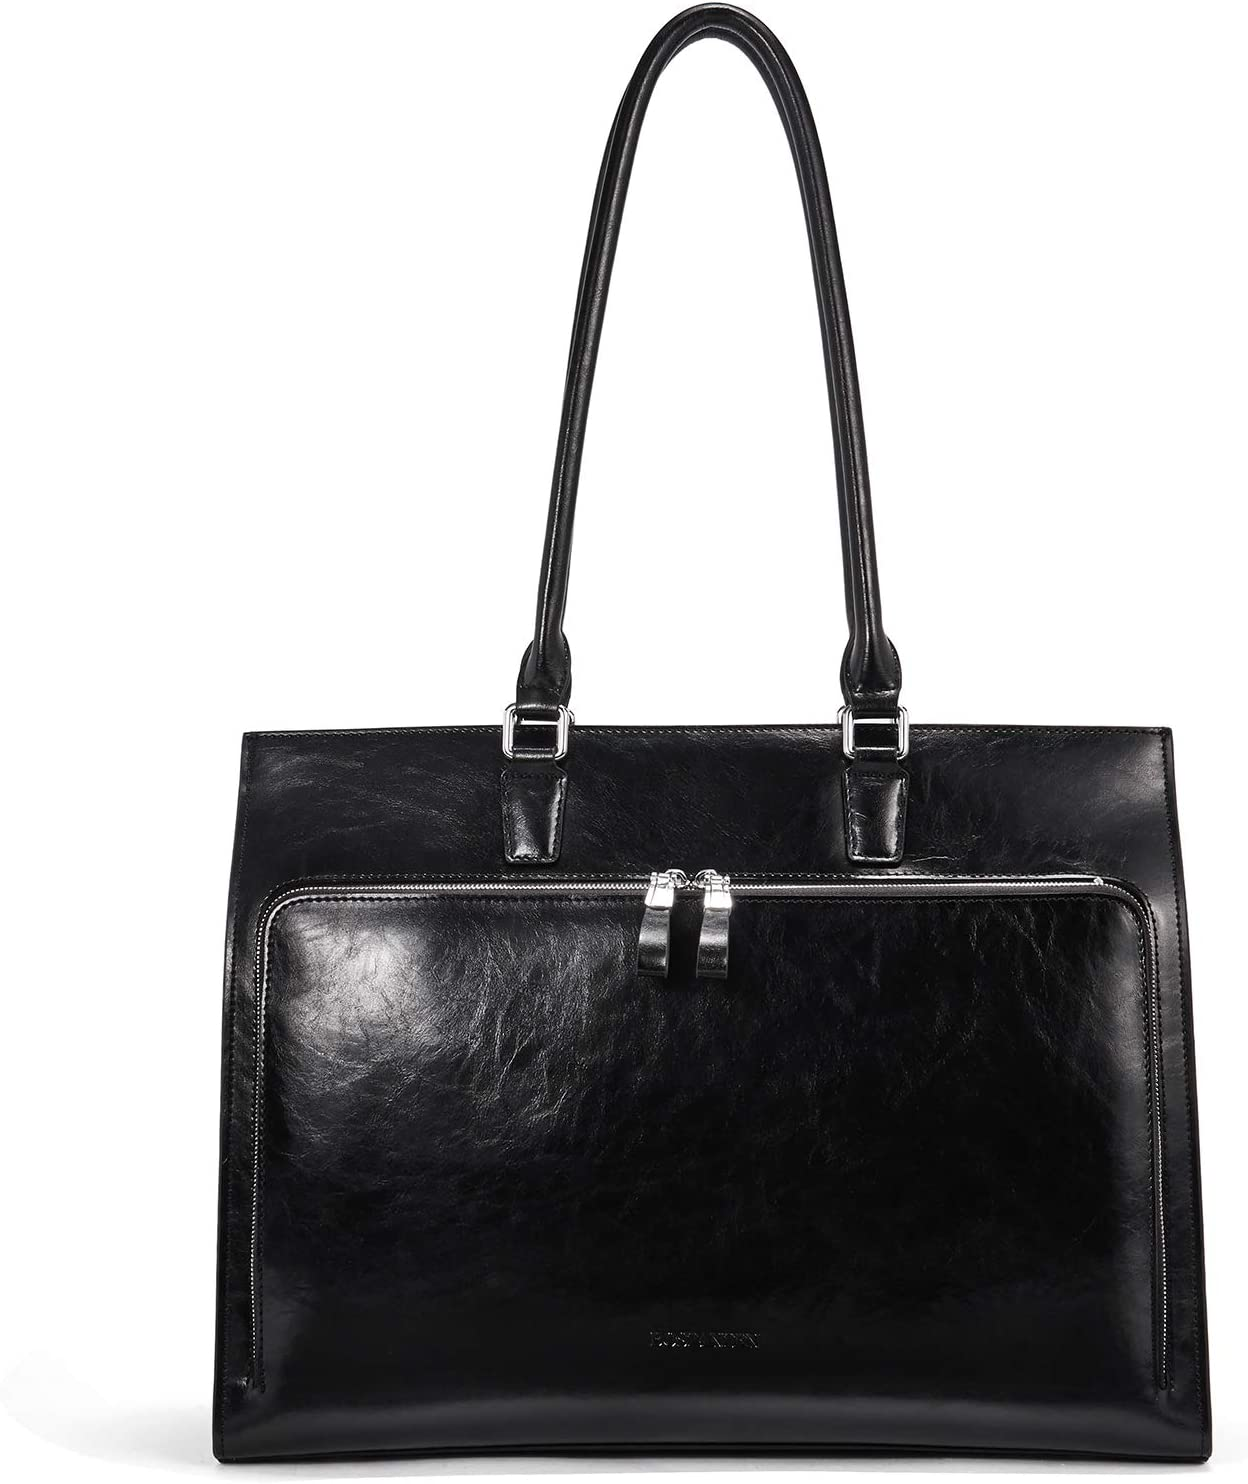 BOSTANTEN Leather Briefcase for Women Vintage 15.6 inch Laptop Bag Business Tote Shoulder Handbag Black